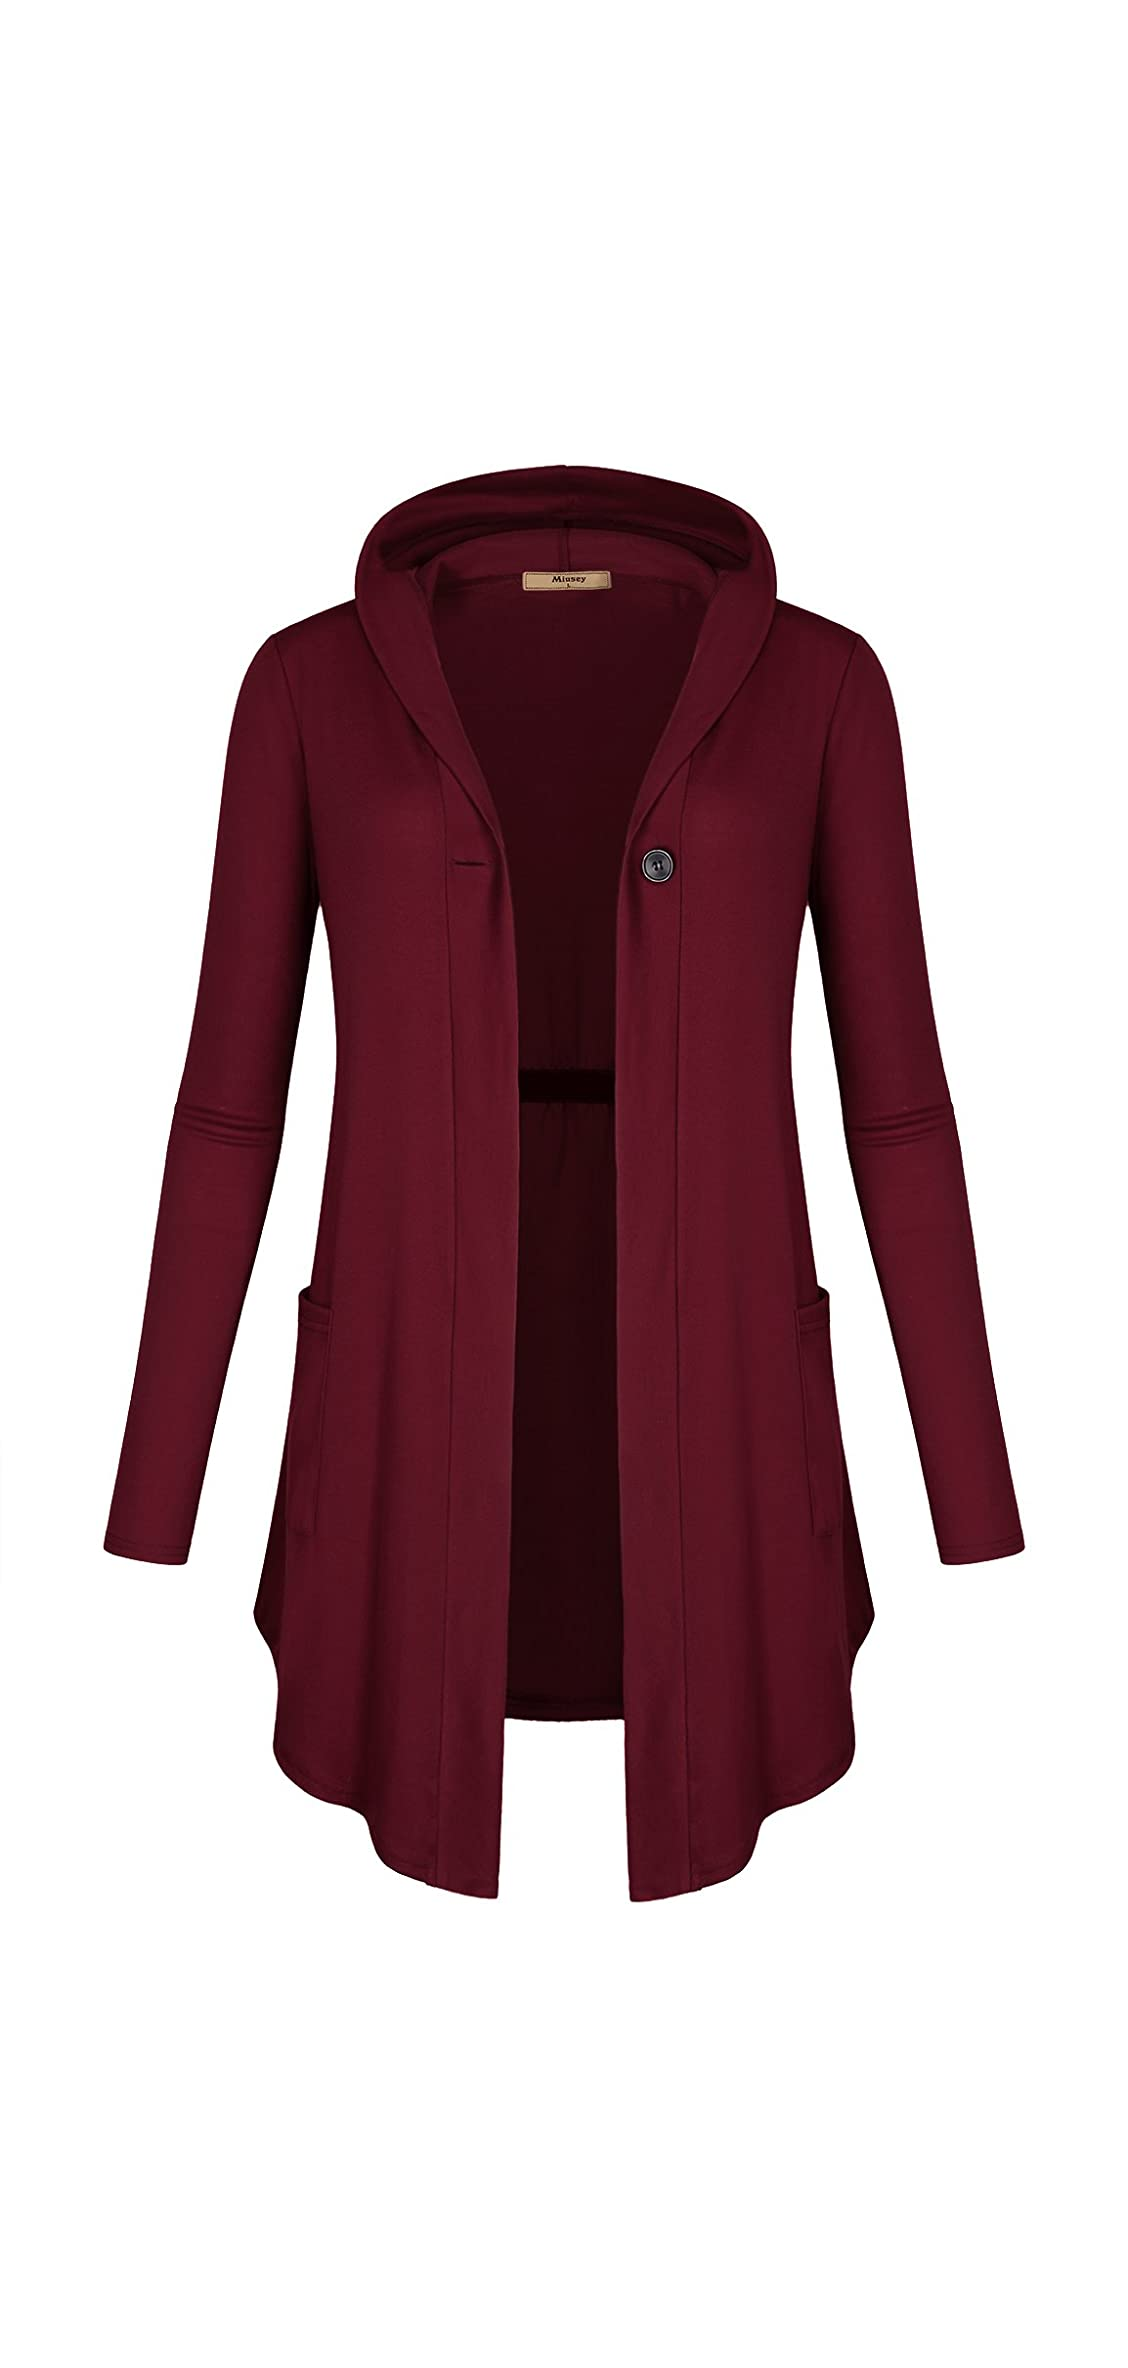 Womens Open Front Cardigan Hoodies Contemporary